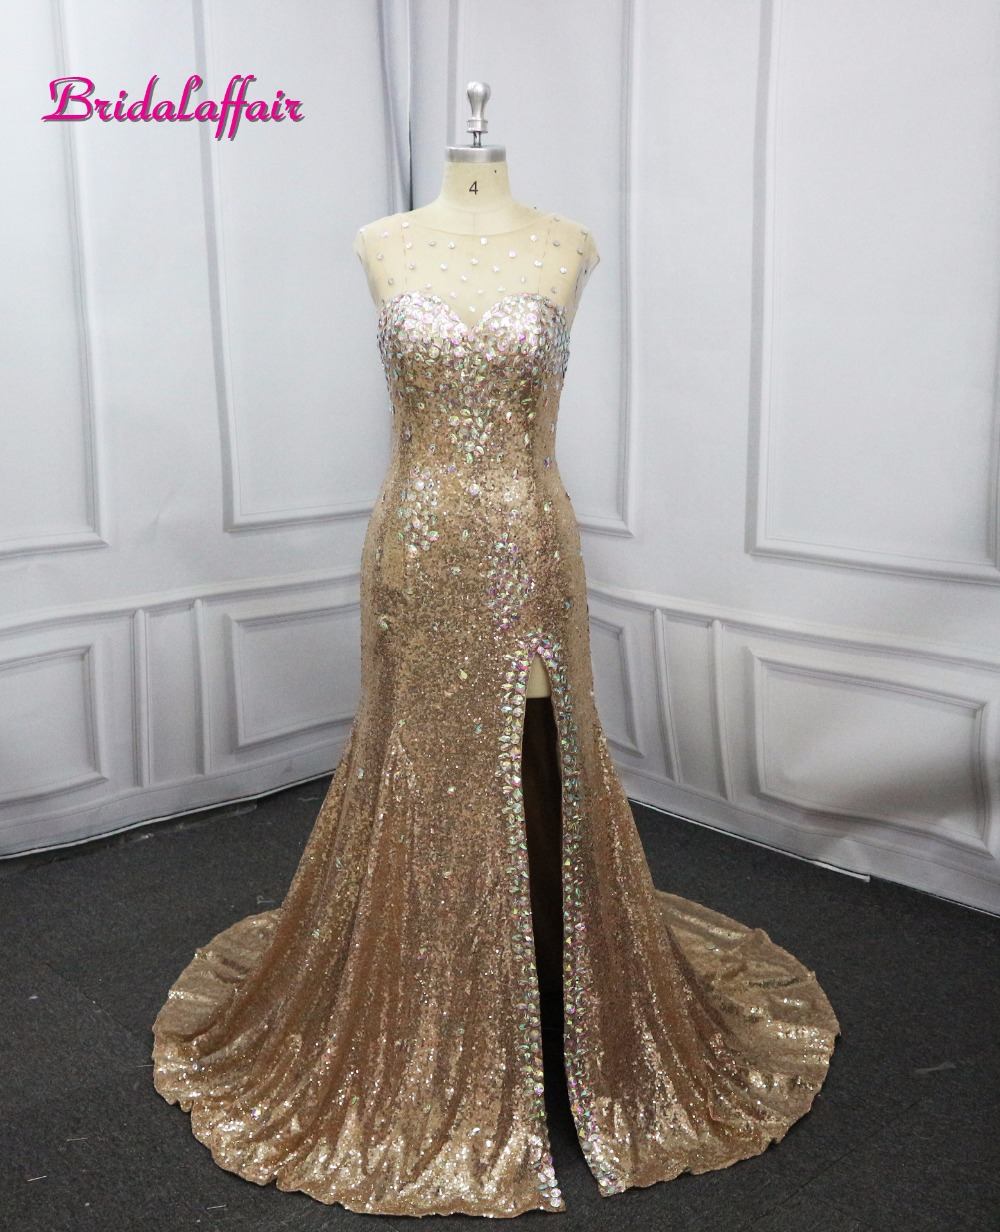 2b08cb96cd457 US $104.88 24% OFF|Luxury Mermaid Prom Dresses 2018 customize Brilliant  Evening Dress Long video Sweetheart Shining Beading Sexy Woman Party  Gowns-in ...